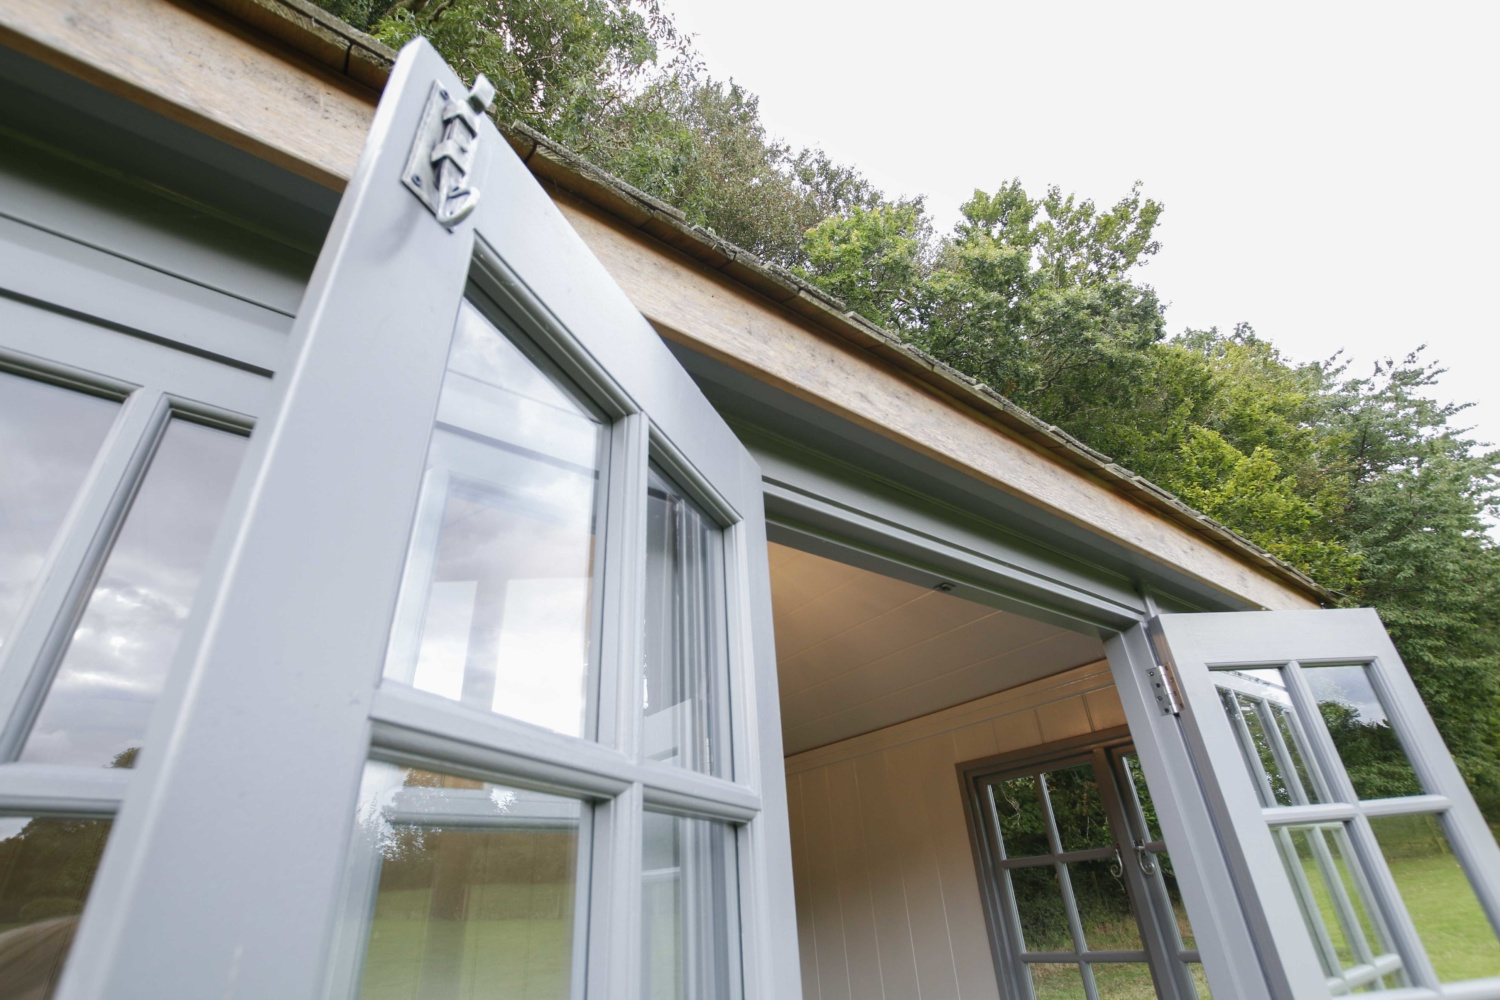 Malvern Garden Buildings visits Jan who owns a Kew Victoria garden room. Owner